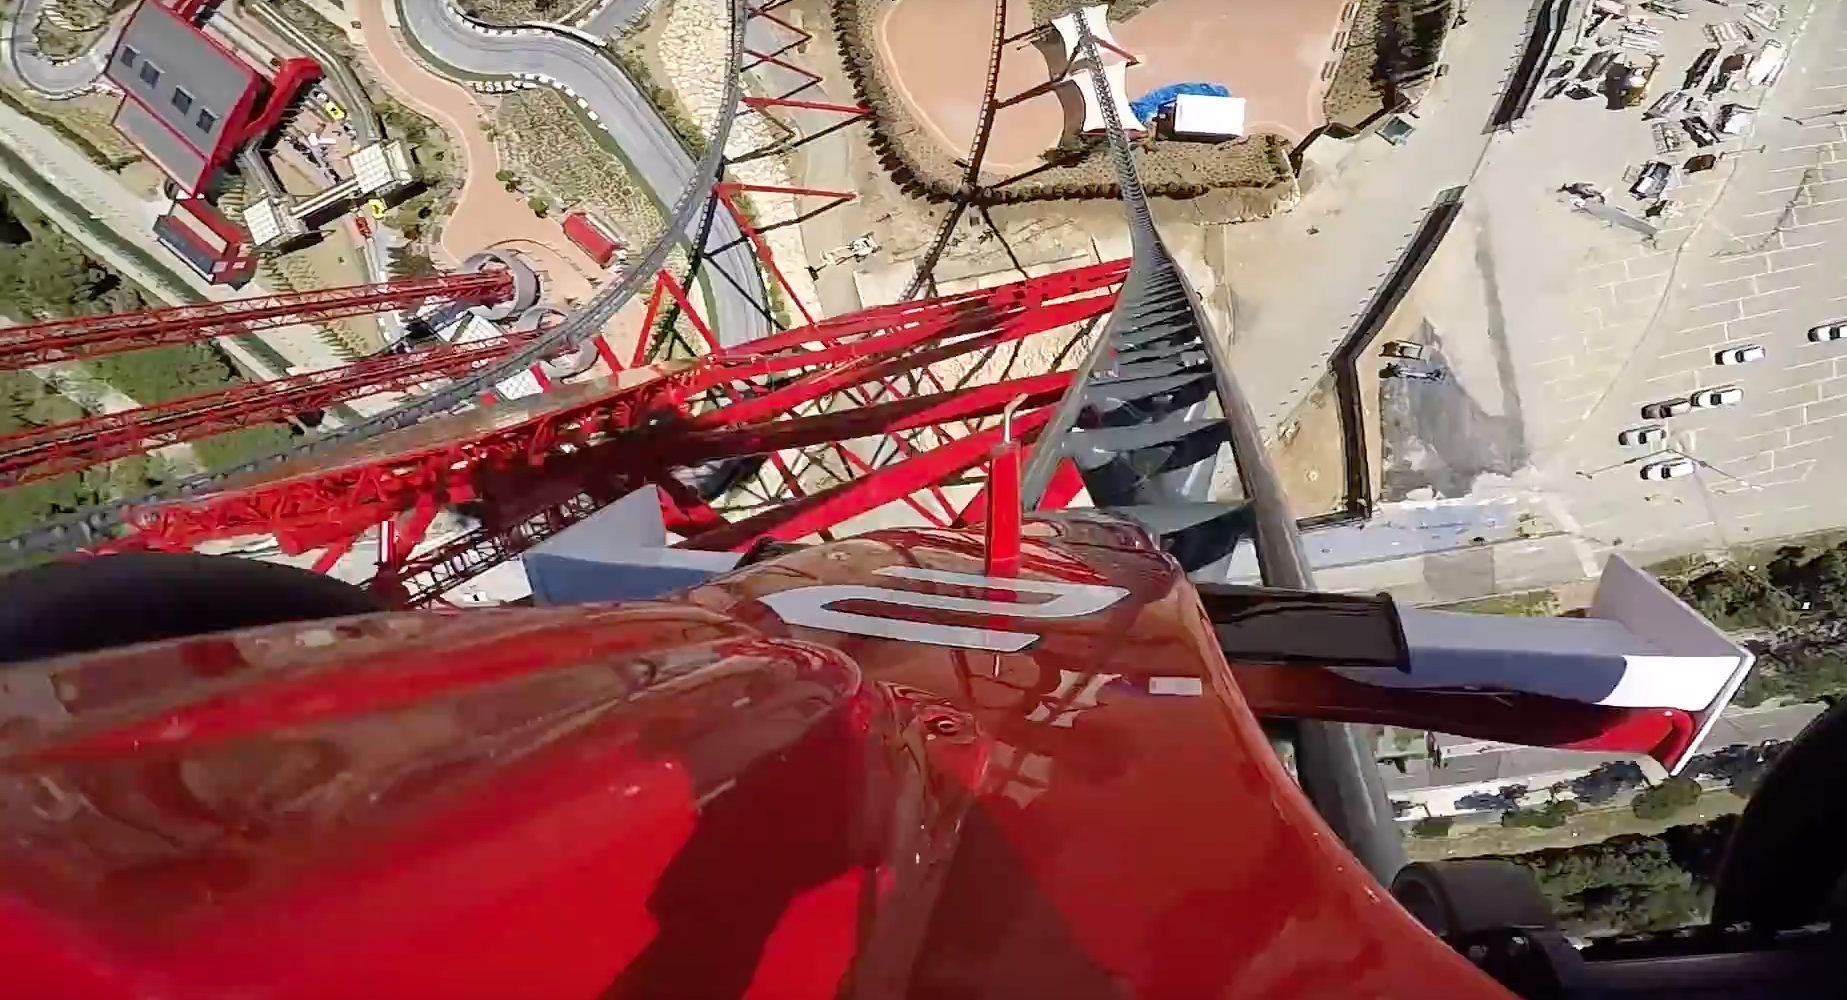 New Ferrari Rollercoaster Is Europe's Tallest And Fastest